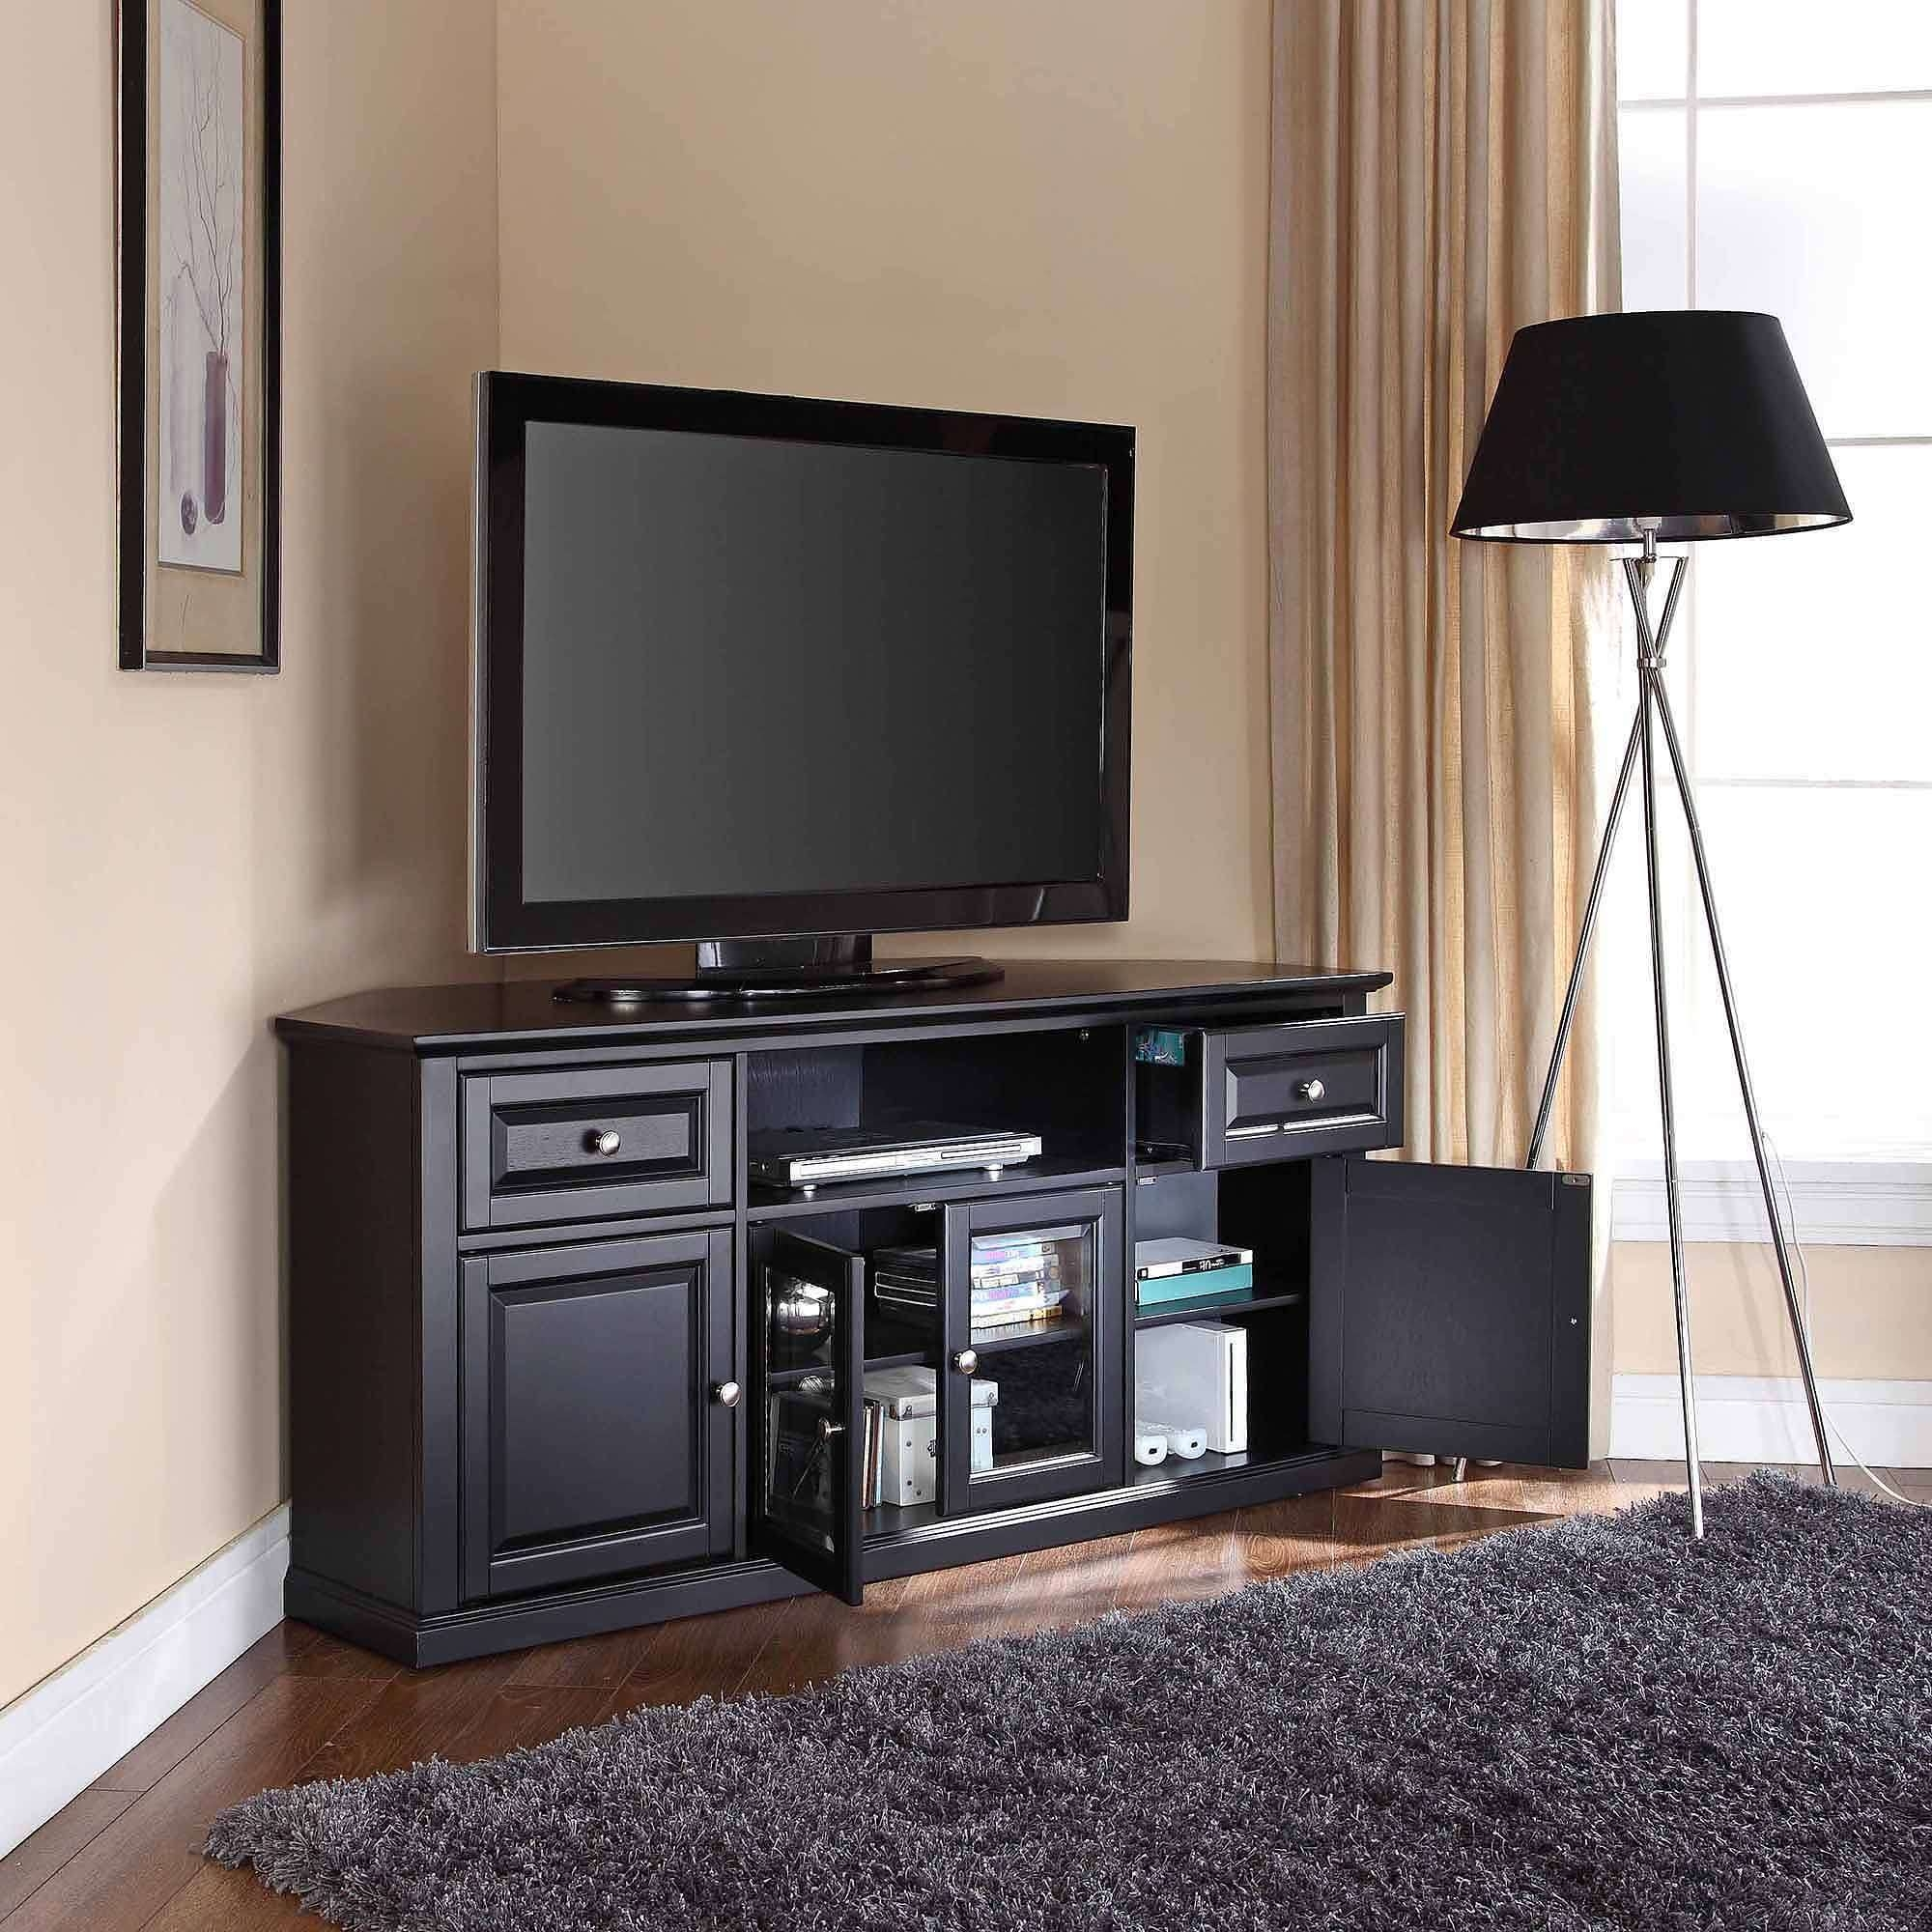 Tv Stand : 32 Unusual 55 Inch Corner Tv Stand With Mount Images Intended For 32 Inch Corner Tv Stands (View 12 of 15)